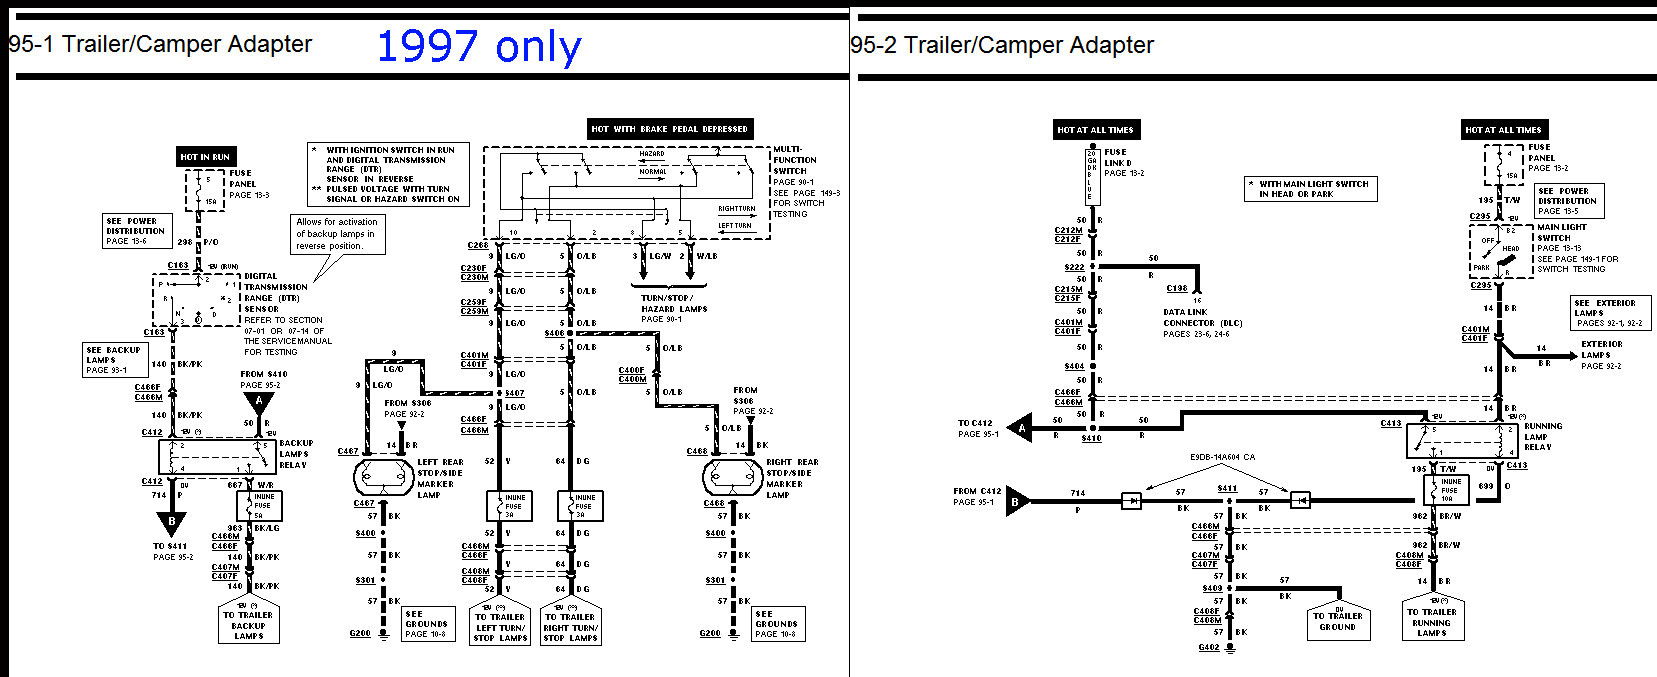 2016 ranger trailer wiring diagram